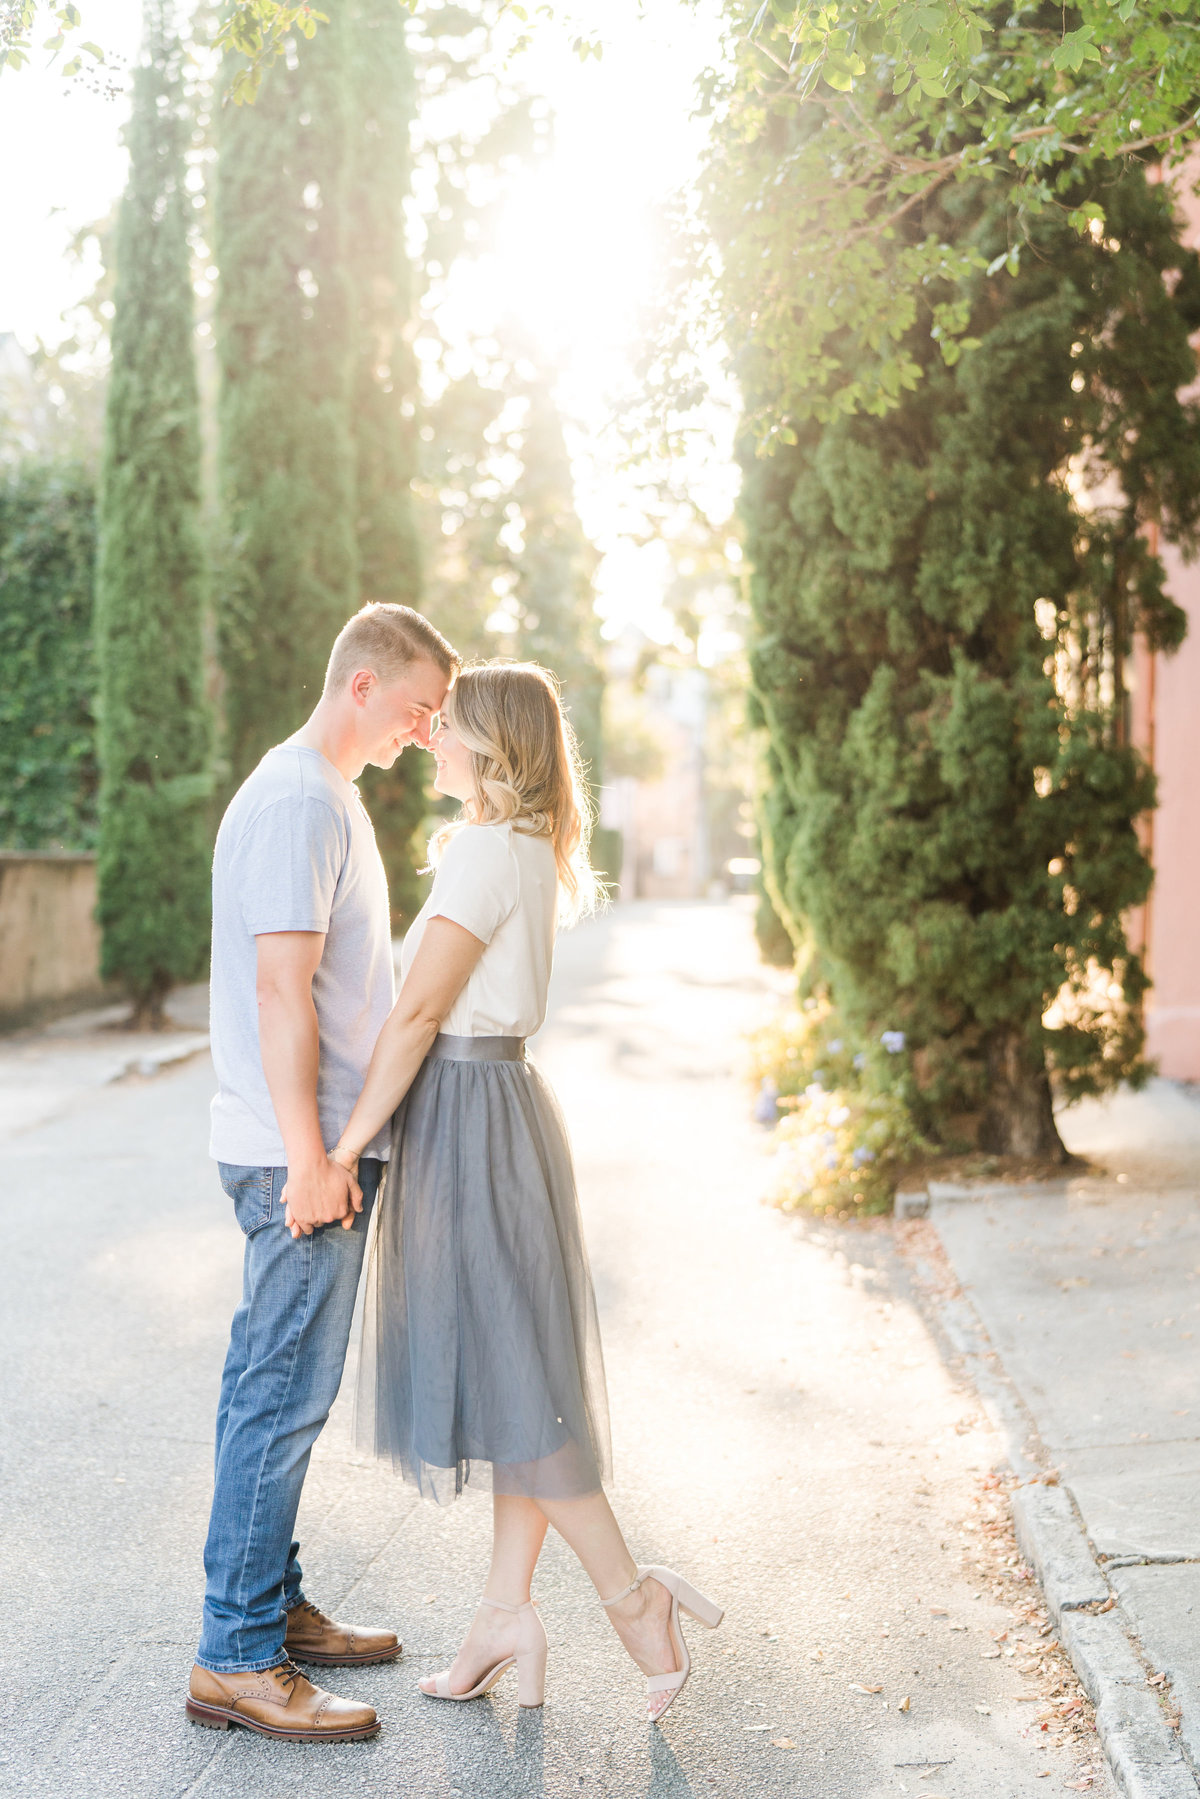 Kate Dye Photography Wedding Engagement Lifestyle Charleston South Carolina Photographer Bright Airy Colorful17